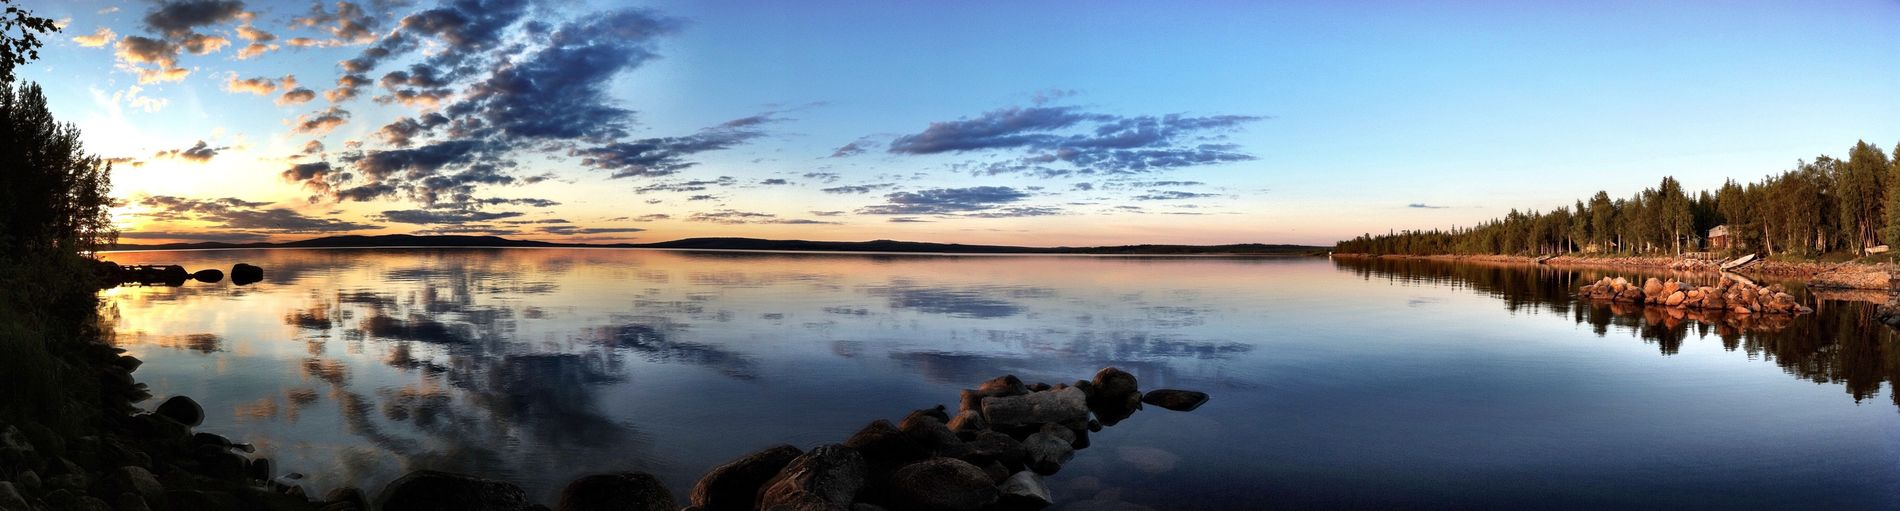 Lapland Suomi Finland Lapland Lake Reflection Clouds And Sky Sunset Rocks Panorama The Essence Of Summer light and reflection The Great Outdoors - 2017 EyeEm Awards